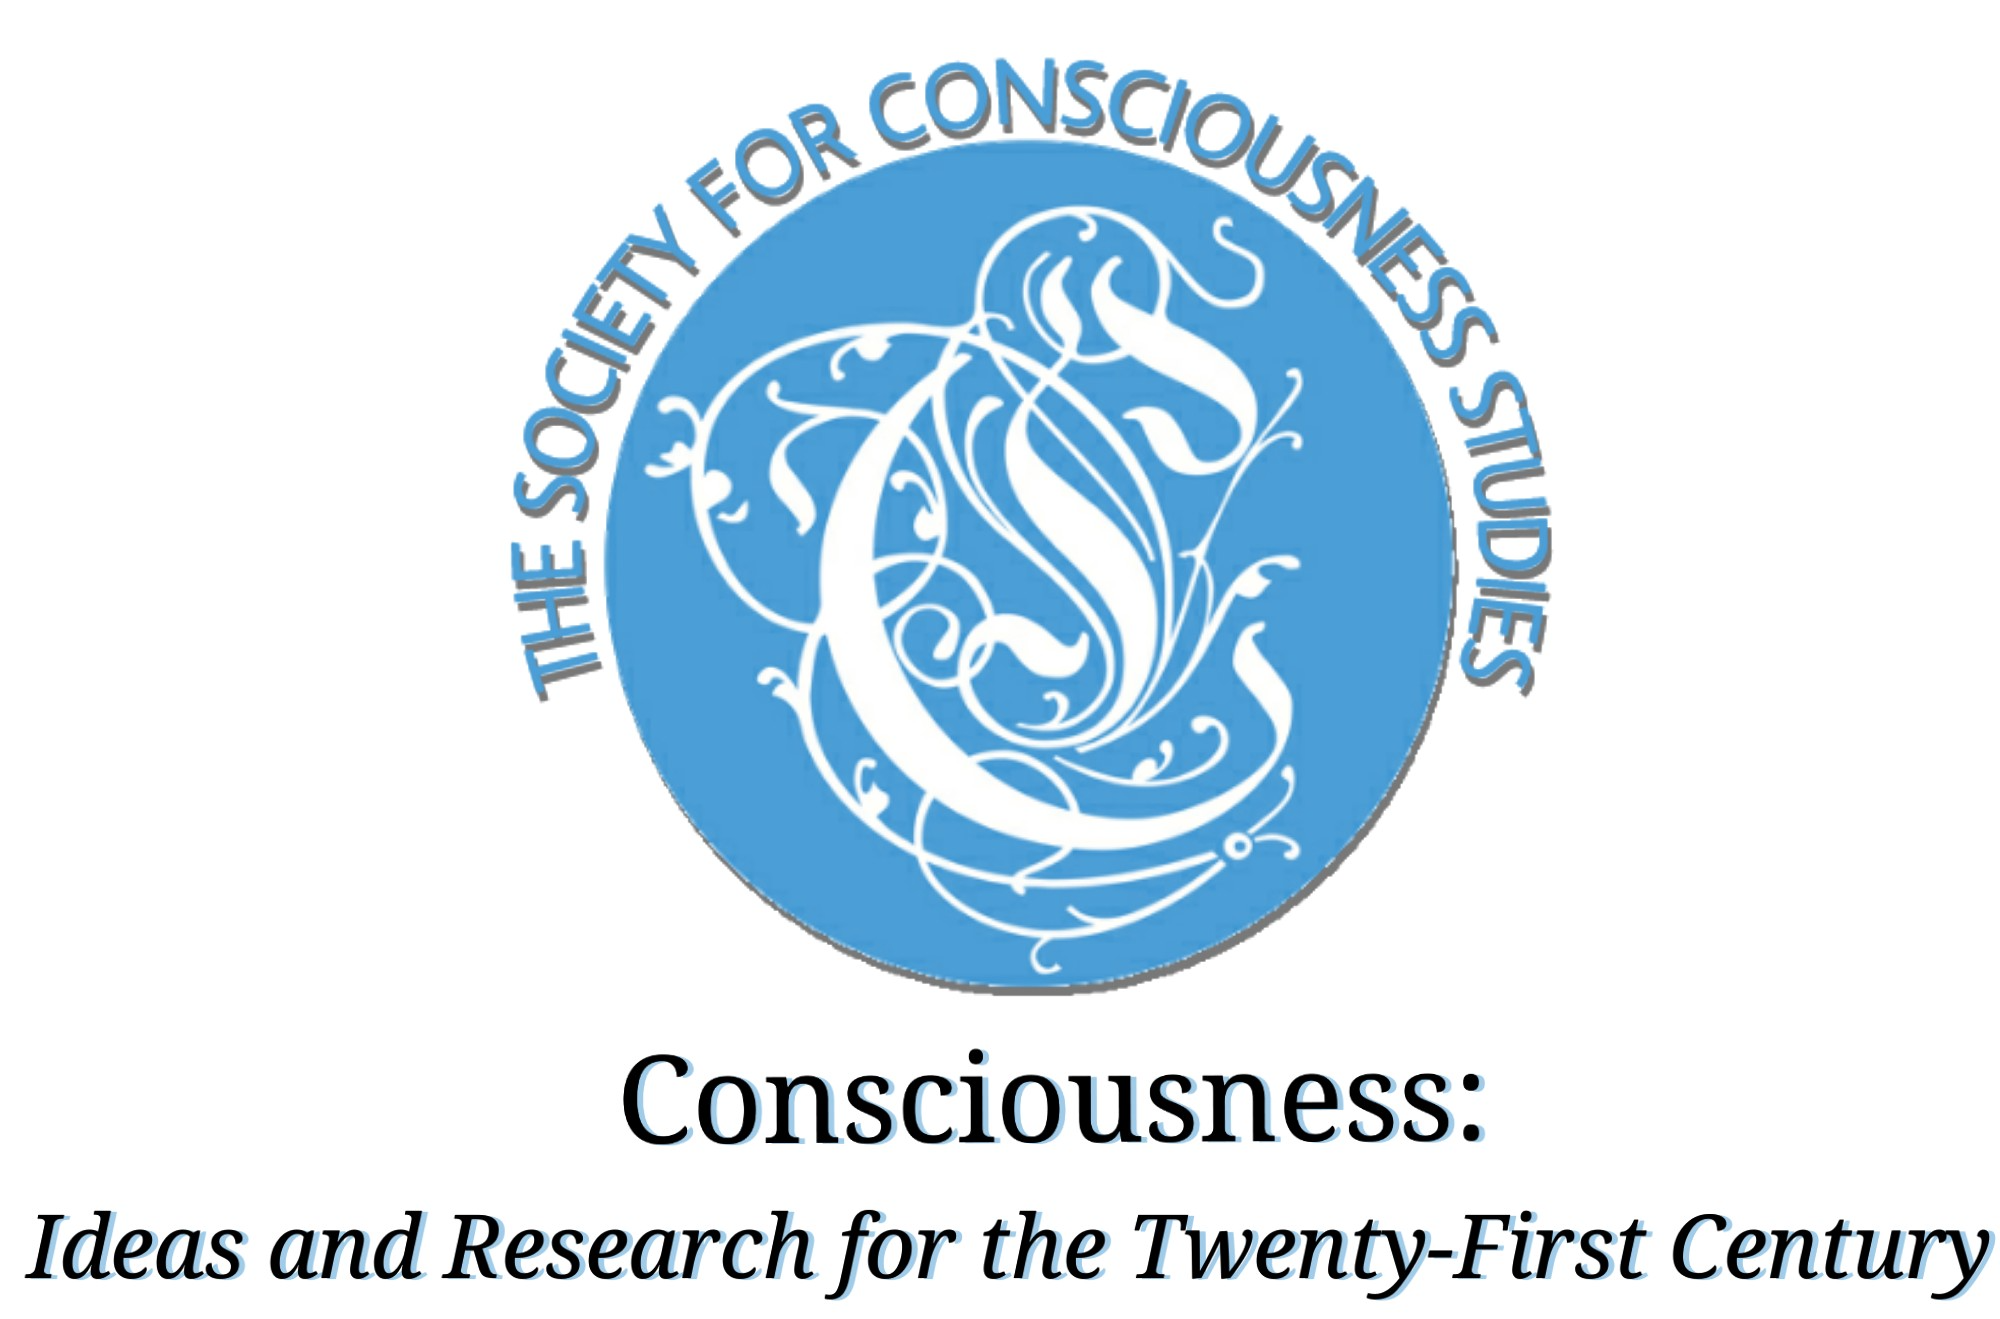 CONSCIOUSNESS: Ideas and Research for the Twenty-First Century